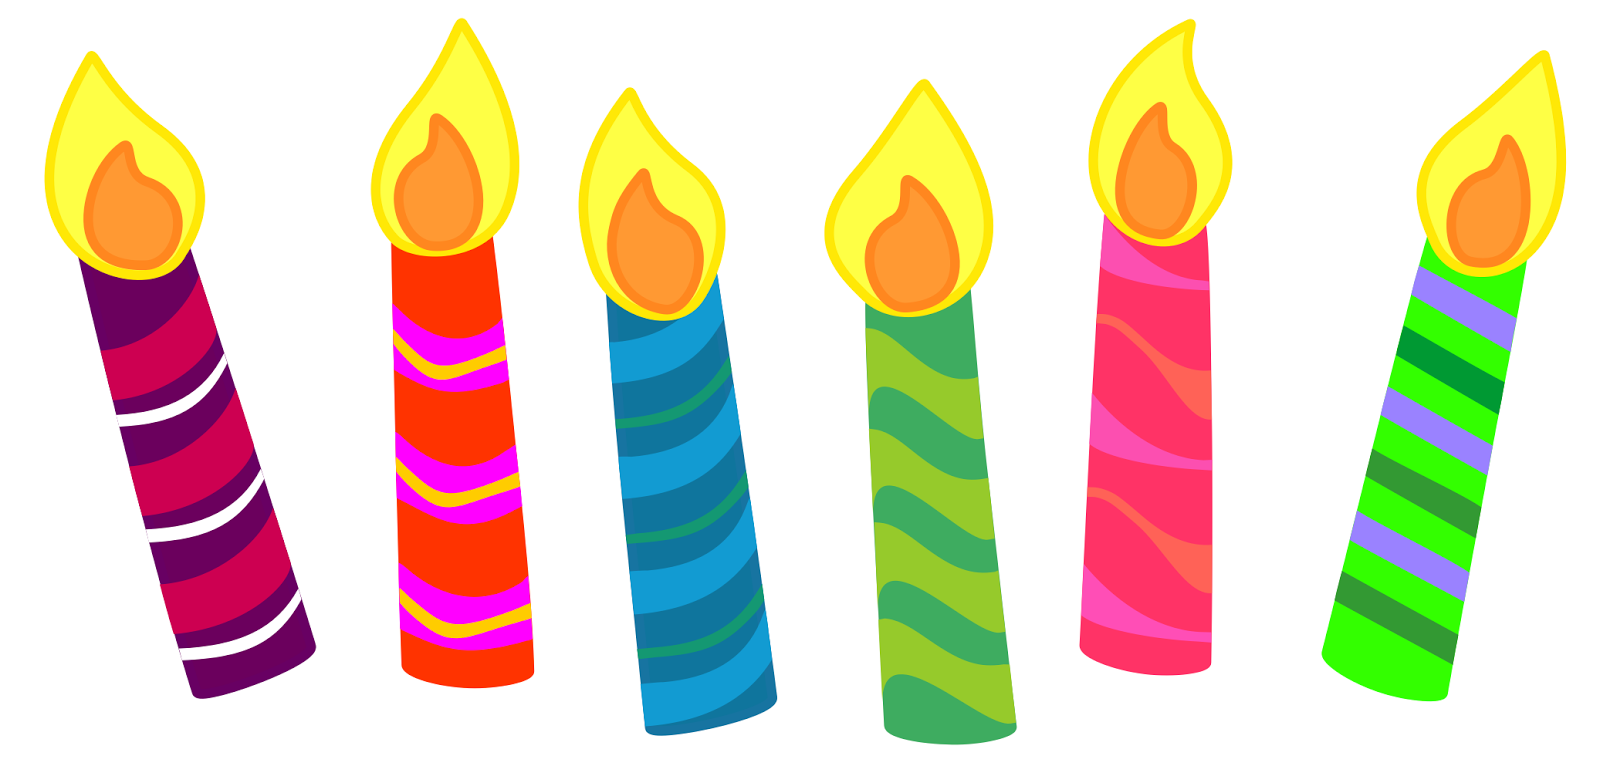 Candles . 1 clipart birthday candle